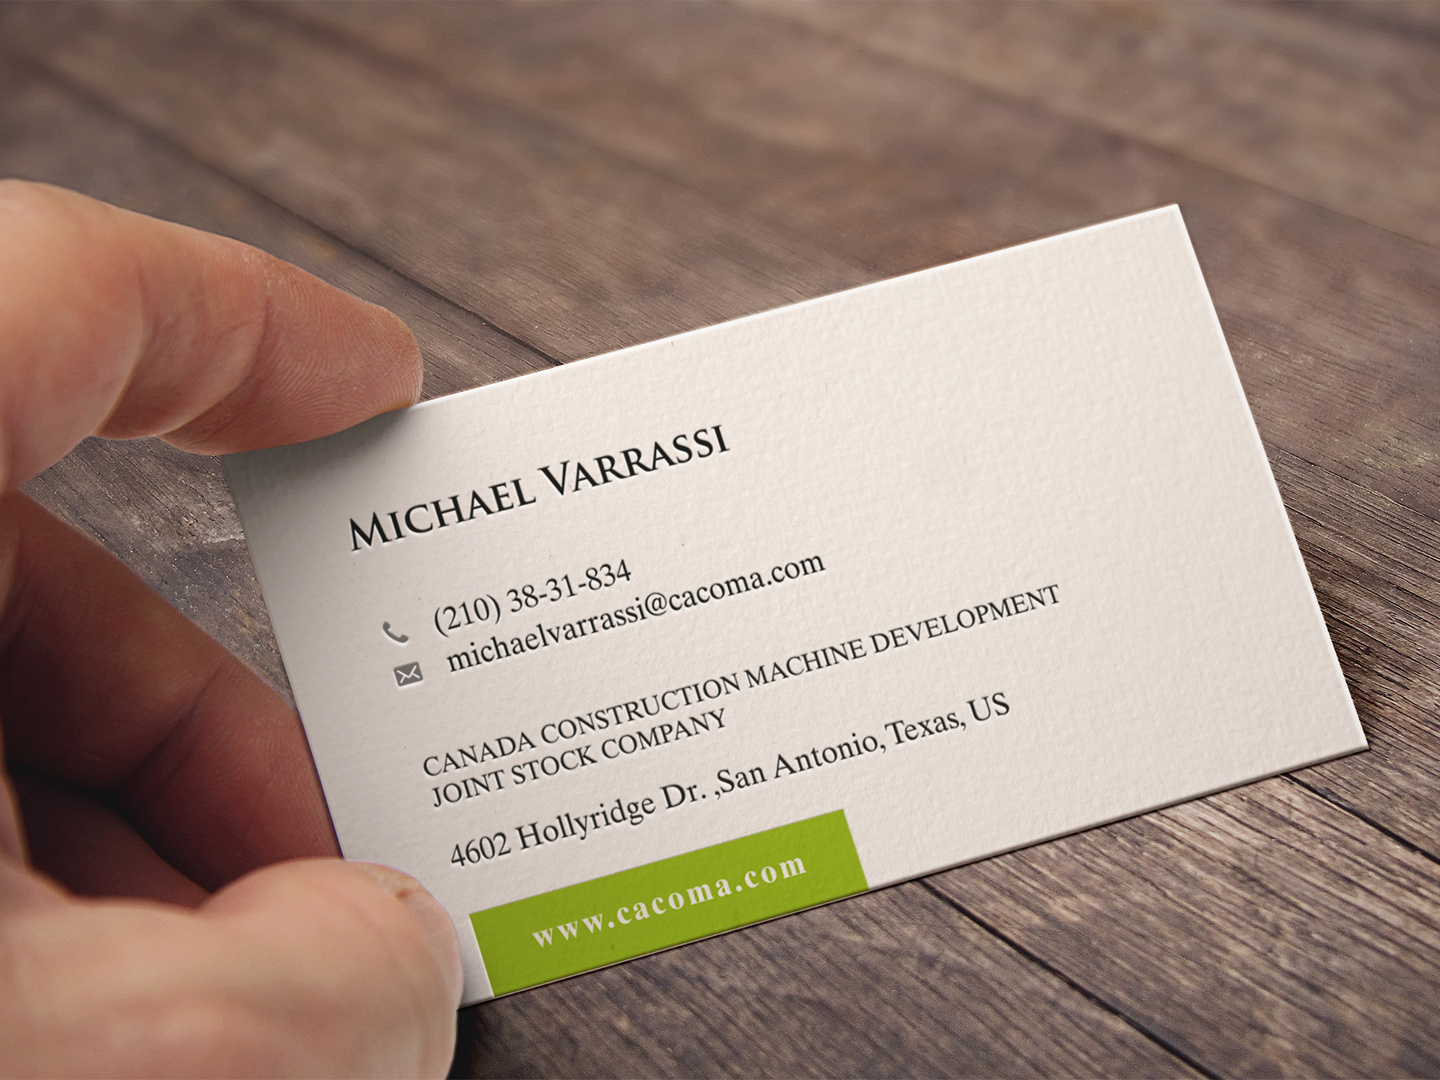 Name Card Design by HYPdesign for Michael Name Card Design - Design ...